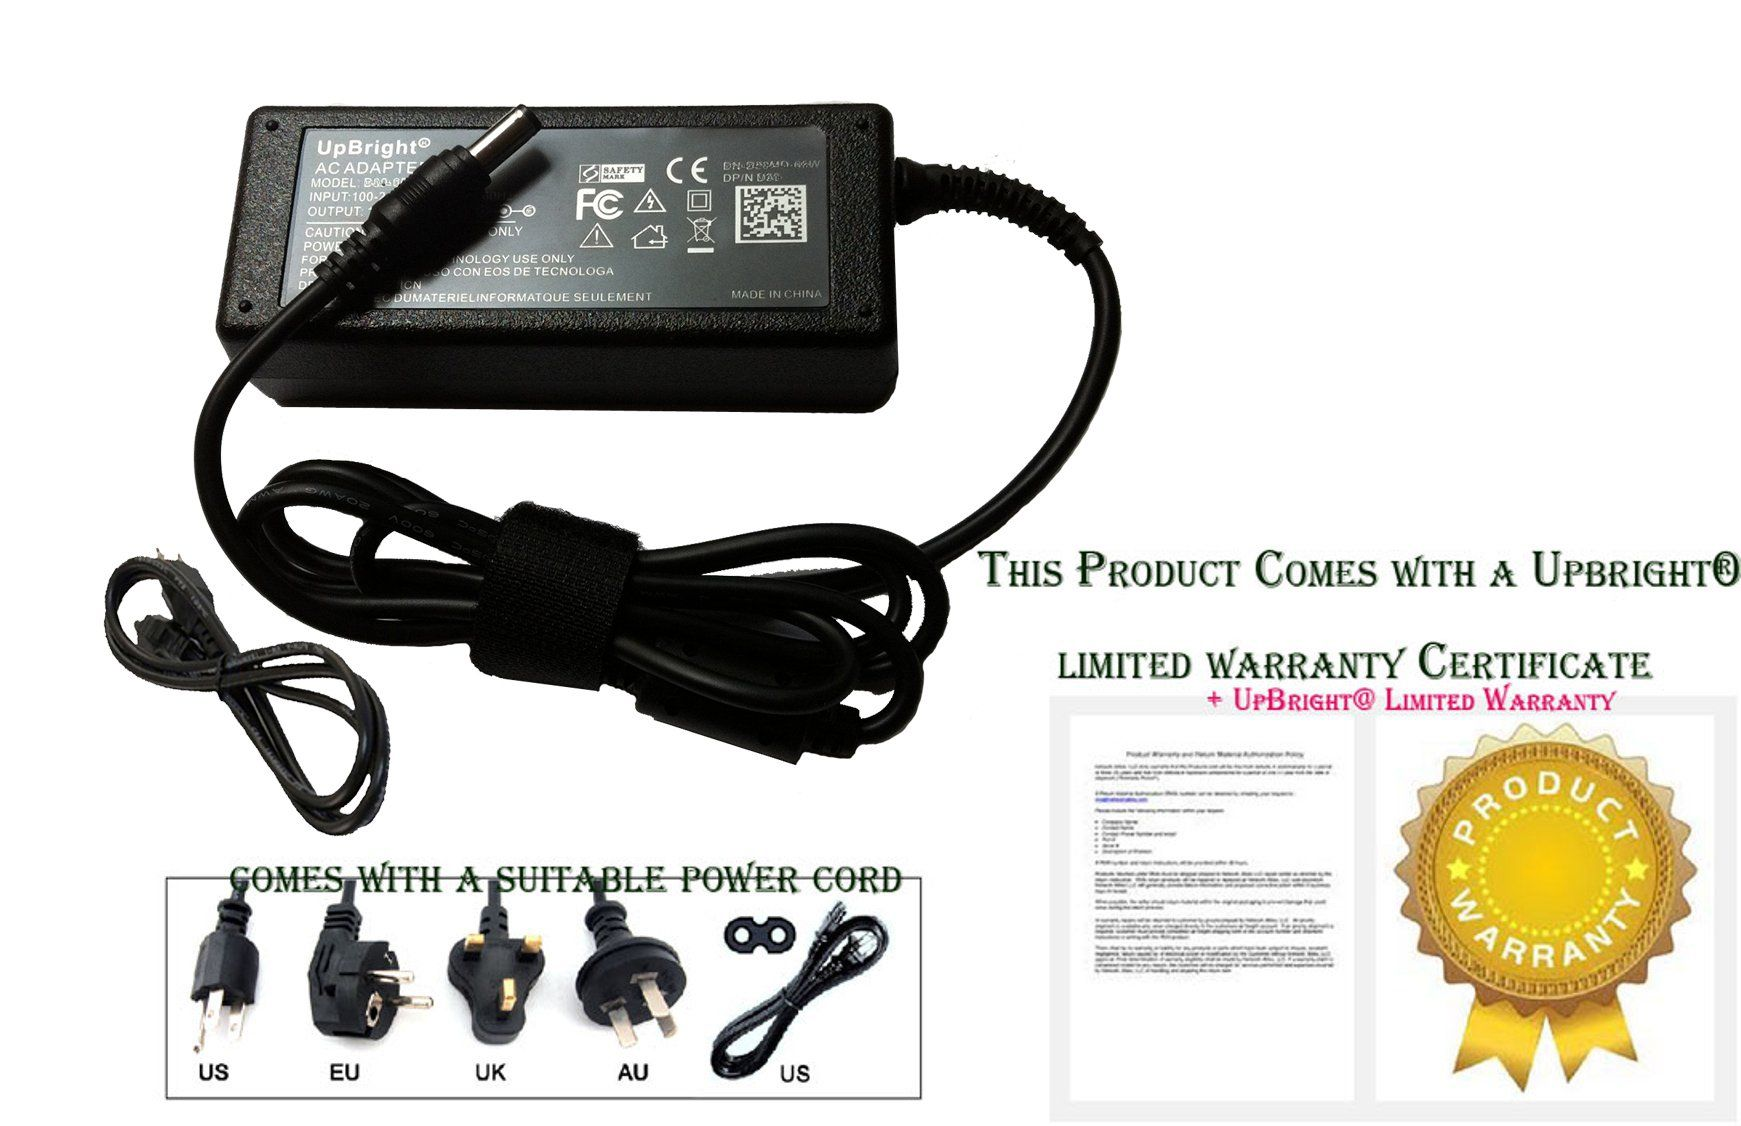 Upbright New Global 12v Ac Dc Adapter For Sharp Uadpa080wjpz Uadpa080wjpz Lcd Tv 12vdc Power Supply Cord Cable Cha Cable Charger Power Supply Battery Charger